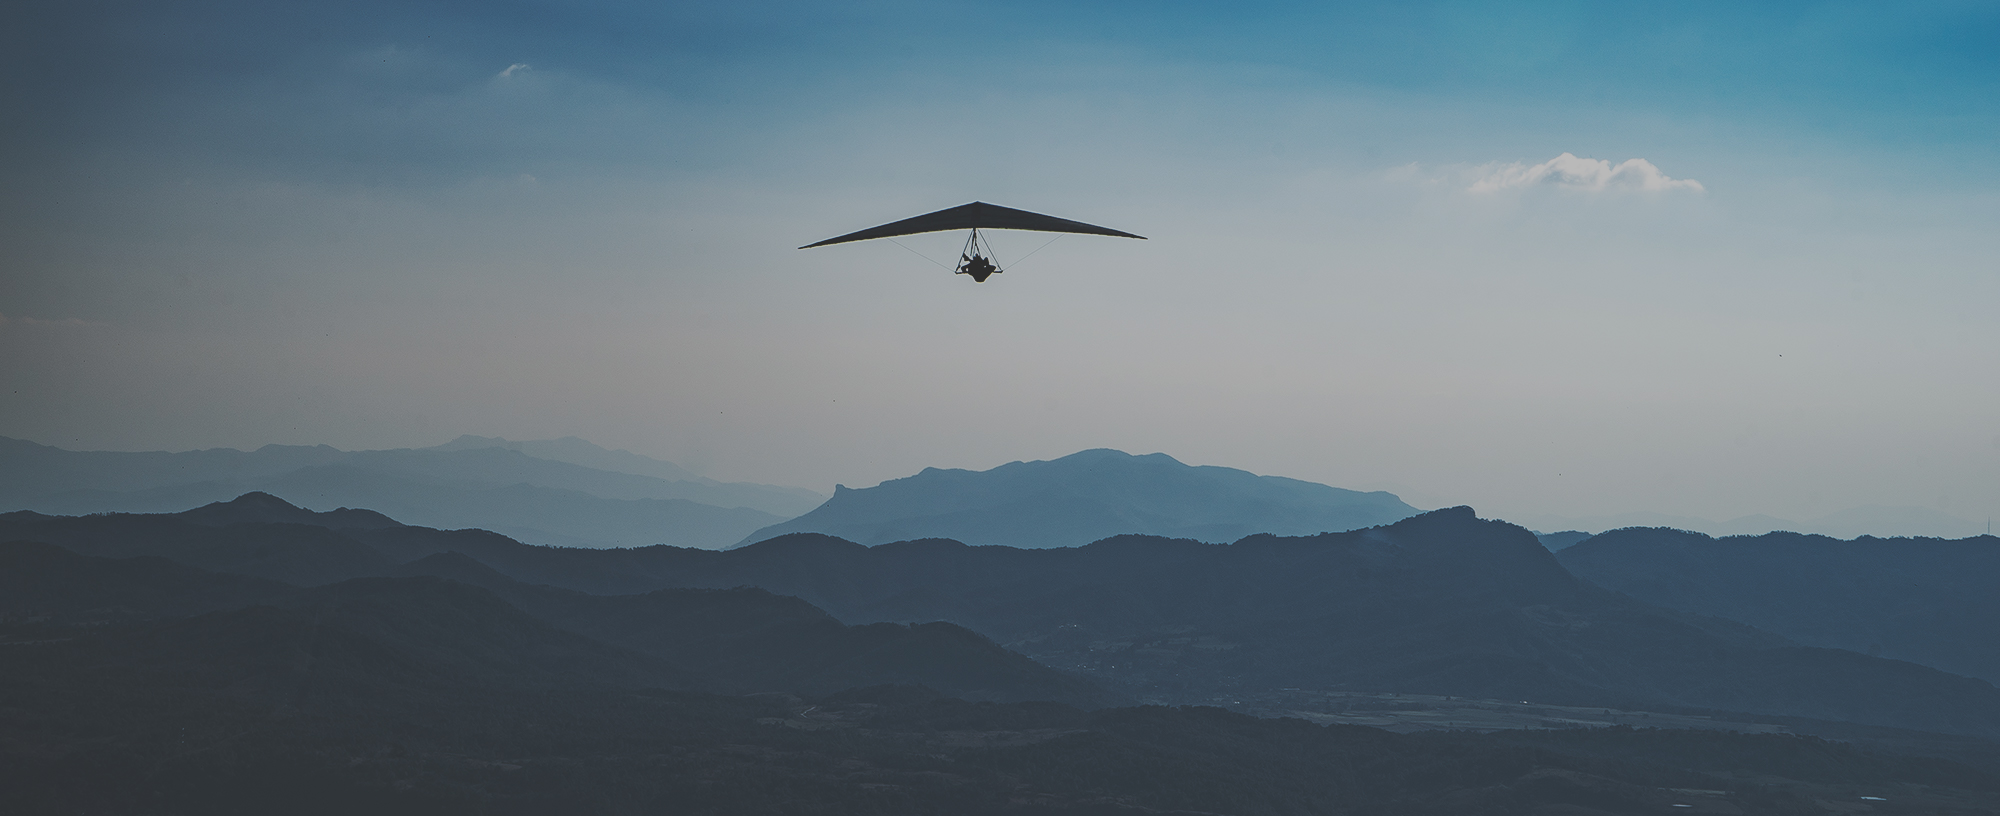 Flying & Recreation - Valle has best flying in the world and we have the most fun